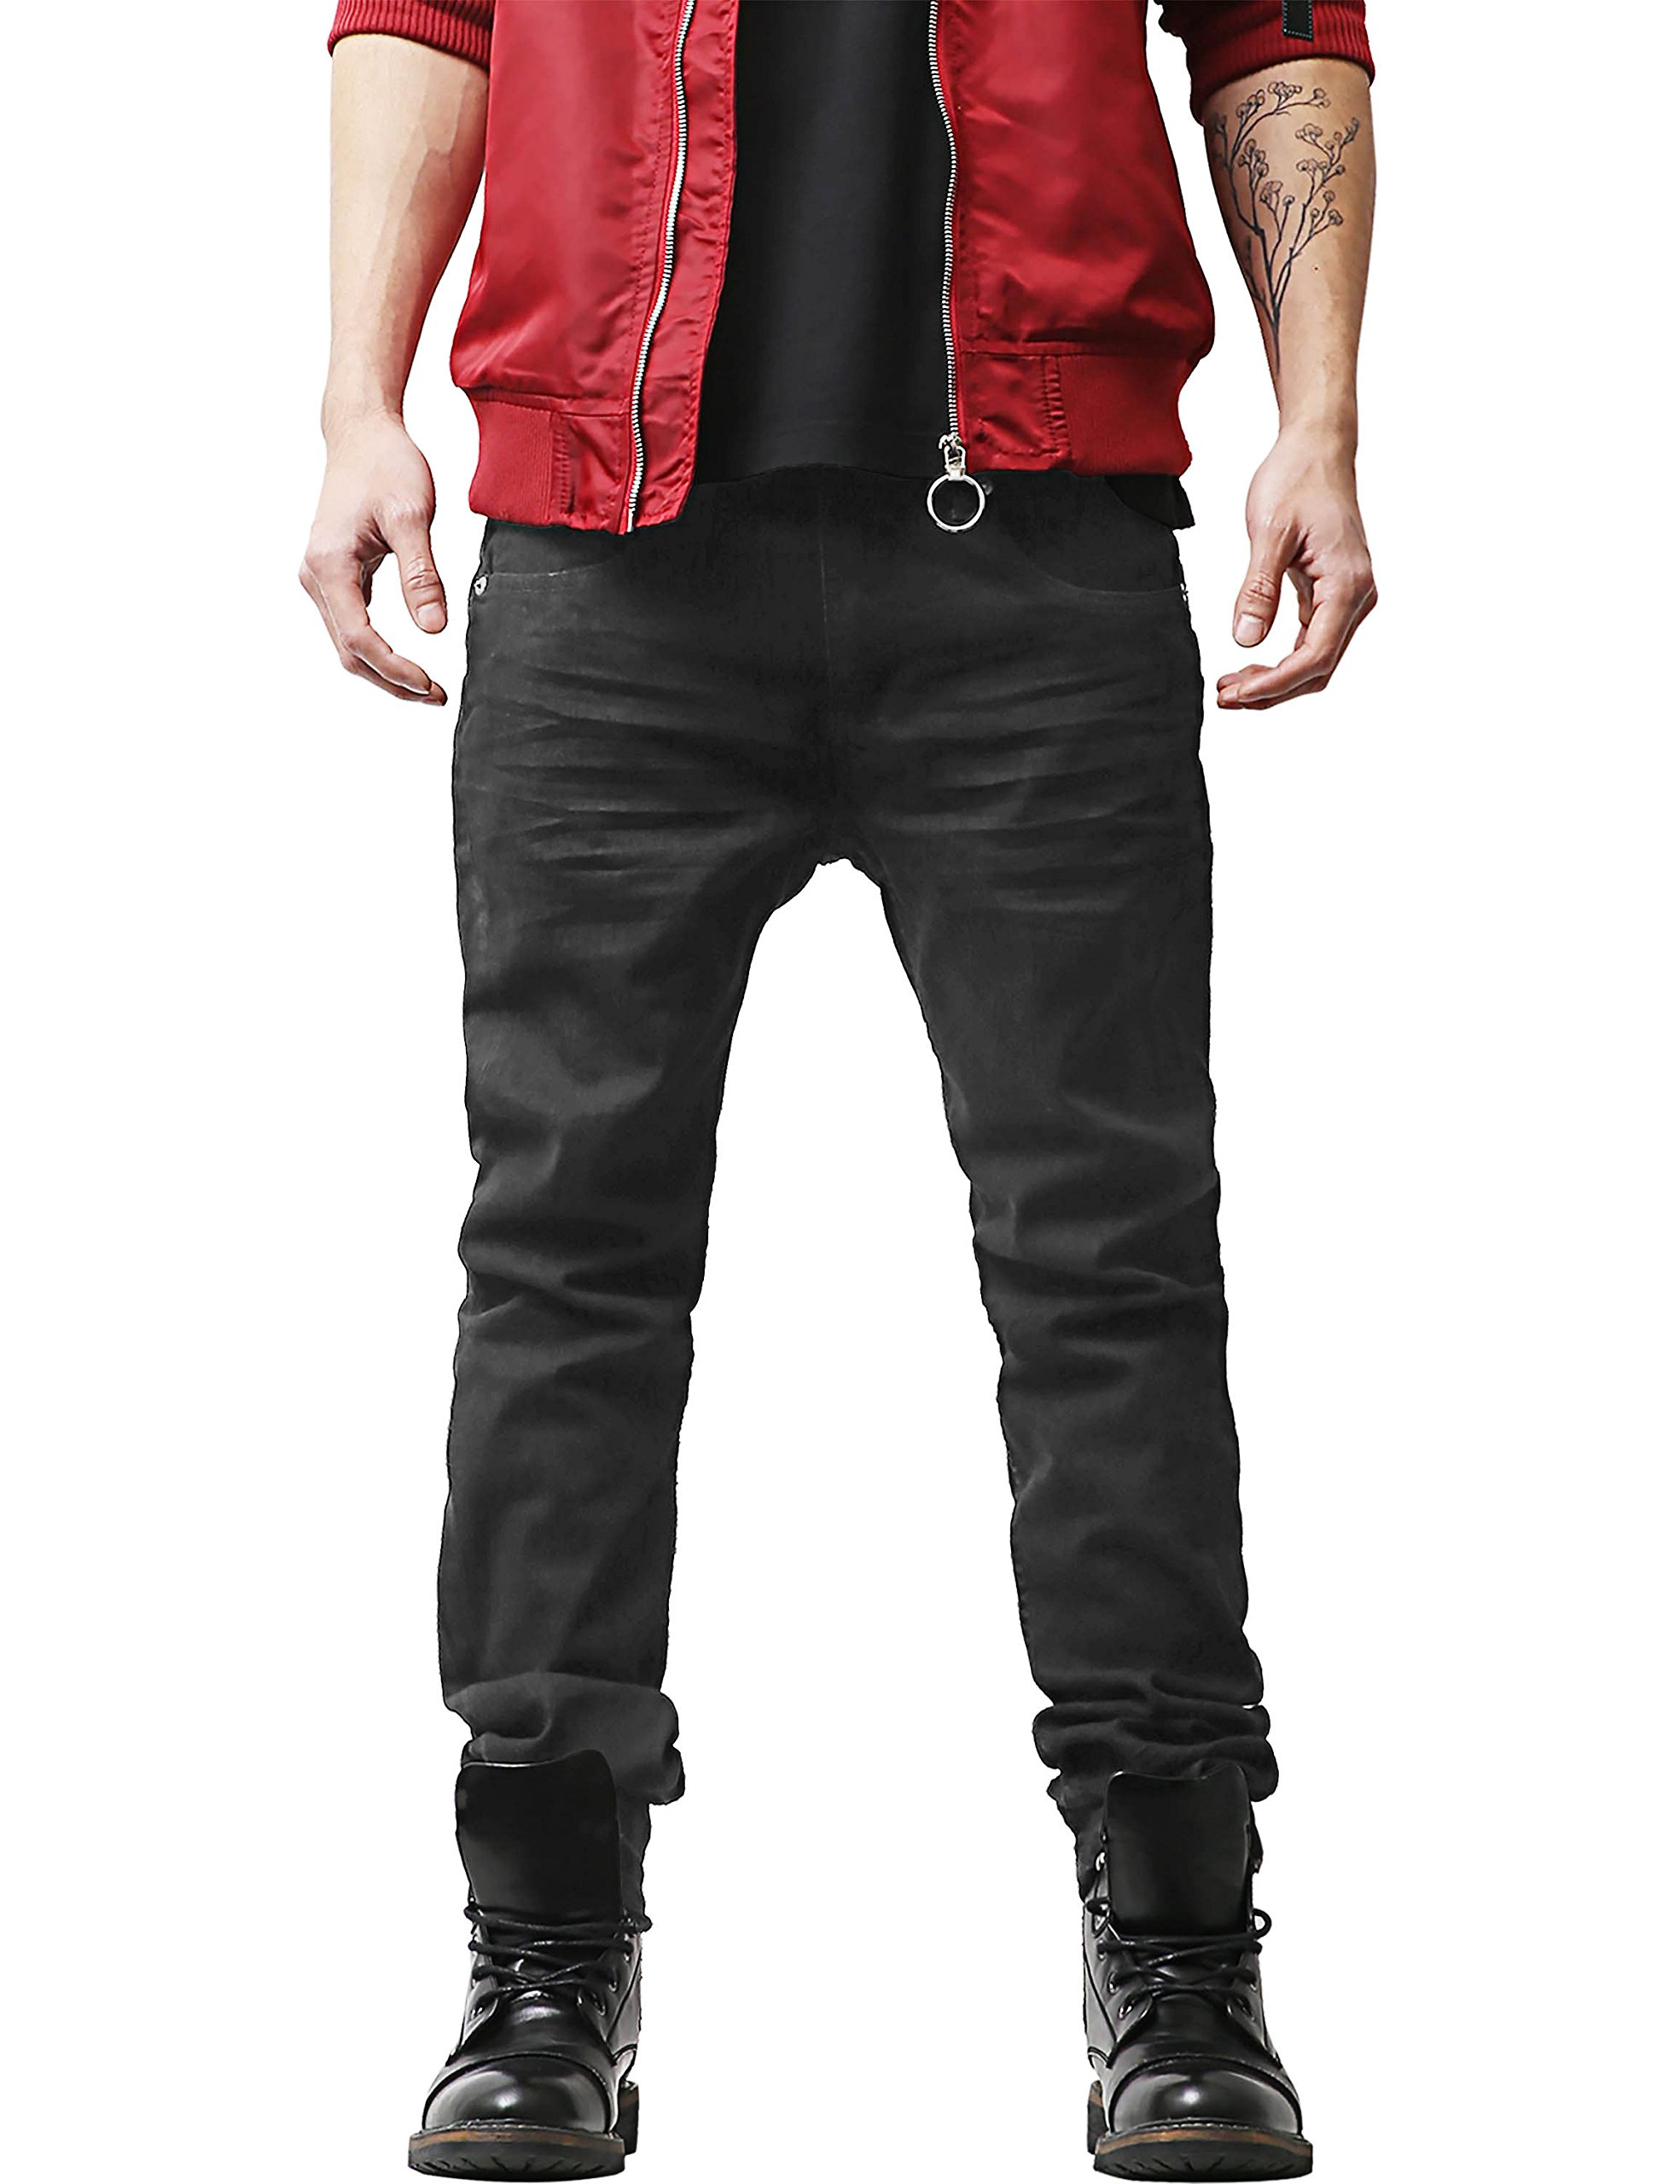 Hat and Beyond HB Mens Jeans Casual Denim Slim Fit Stretch Pants (42X32, 029.blackbaked)